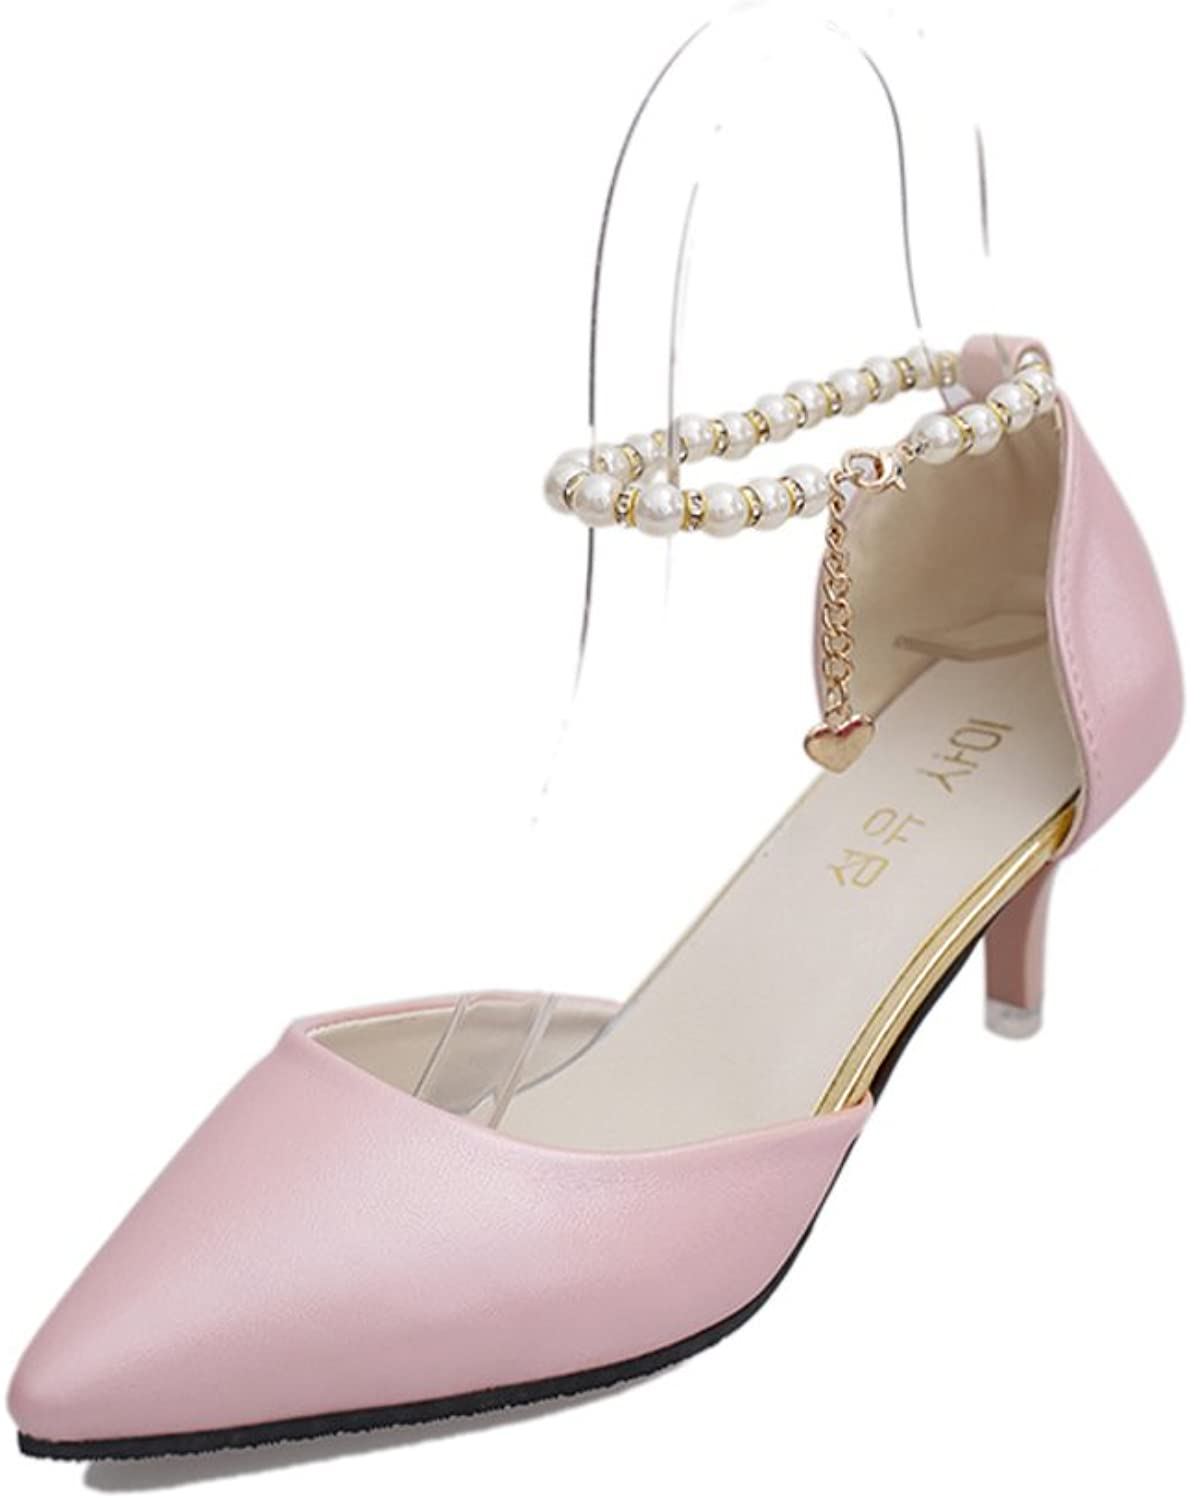 Huhuj Spring and summer pointed stiletto sandal High button shoes